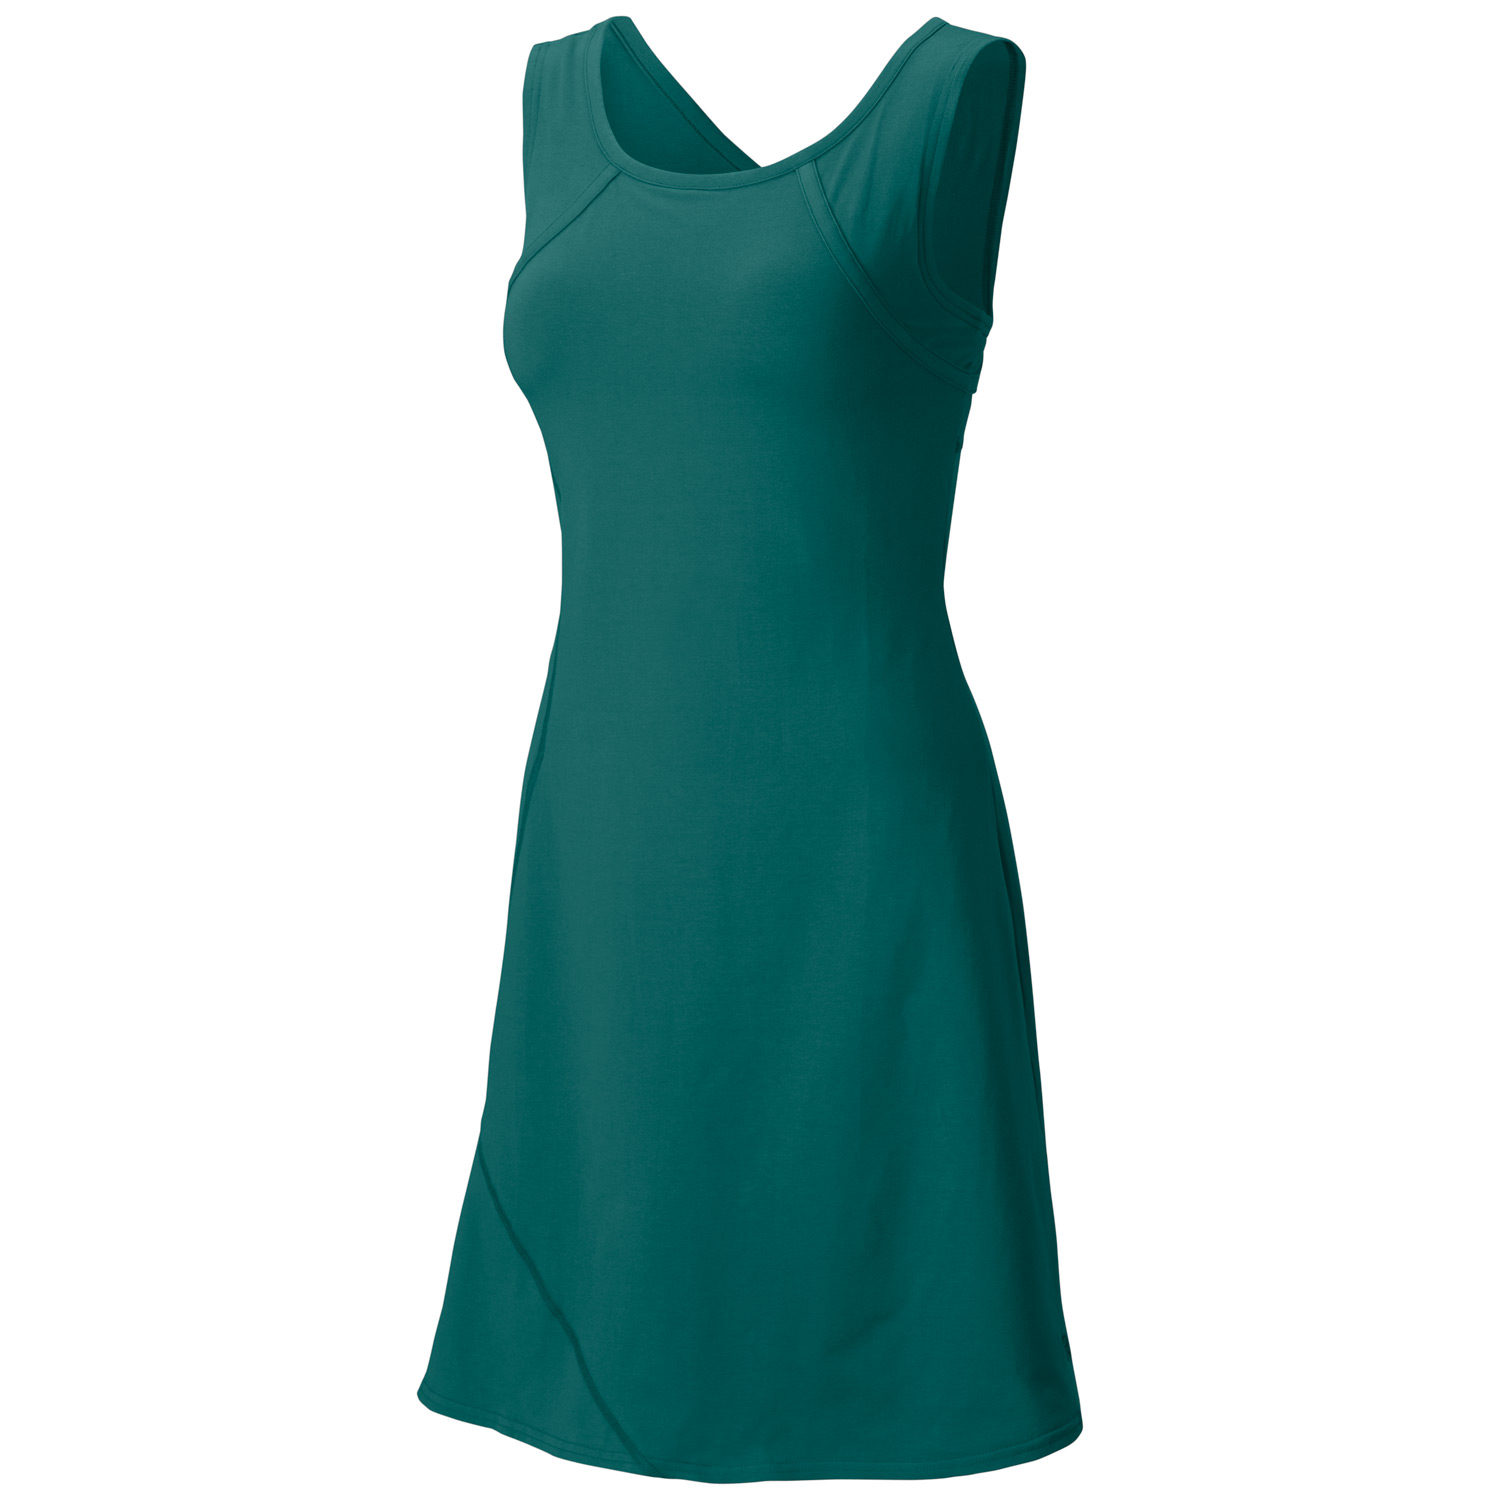 "Entertainment If you can pack just one dress, make it the Loess. Mornings on the beach and evenings at the bistro, this soft organic cotton dress does it all, with a clean, form-fitting cut and a racerback design for fluid movement.Key Features of the Mountain Hardwear Loess Dress: Update: style lines, thinner neck binding, pocket placement Integrated shelf bra for support Flattering scooped neckline Flat-lock seam construction eliminates chafe Comfy cotton and hidden zip pocket make this dress perfect to just ""go"" Apparel Fit Fitted Weight11.5 oz. / 327 g. Center Back Length37"" / 94 cm BodyV6™ Stretch Jersey - $65.00"